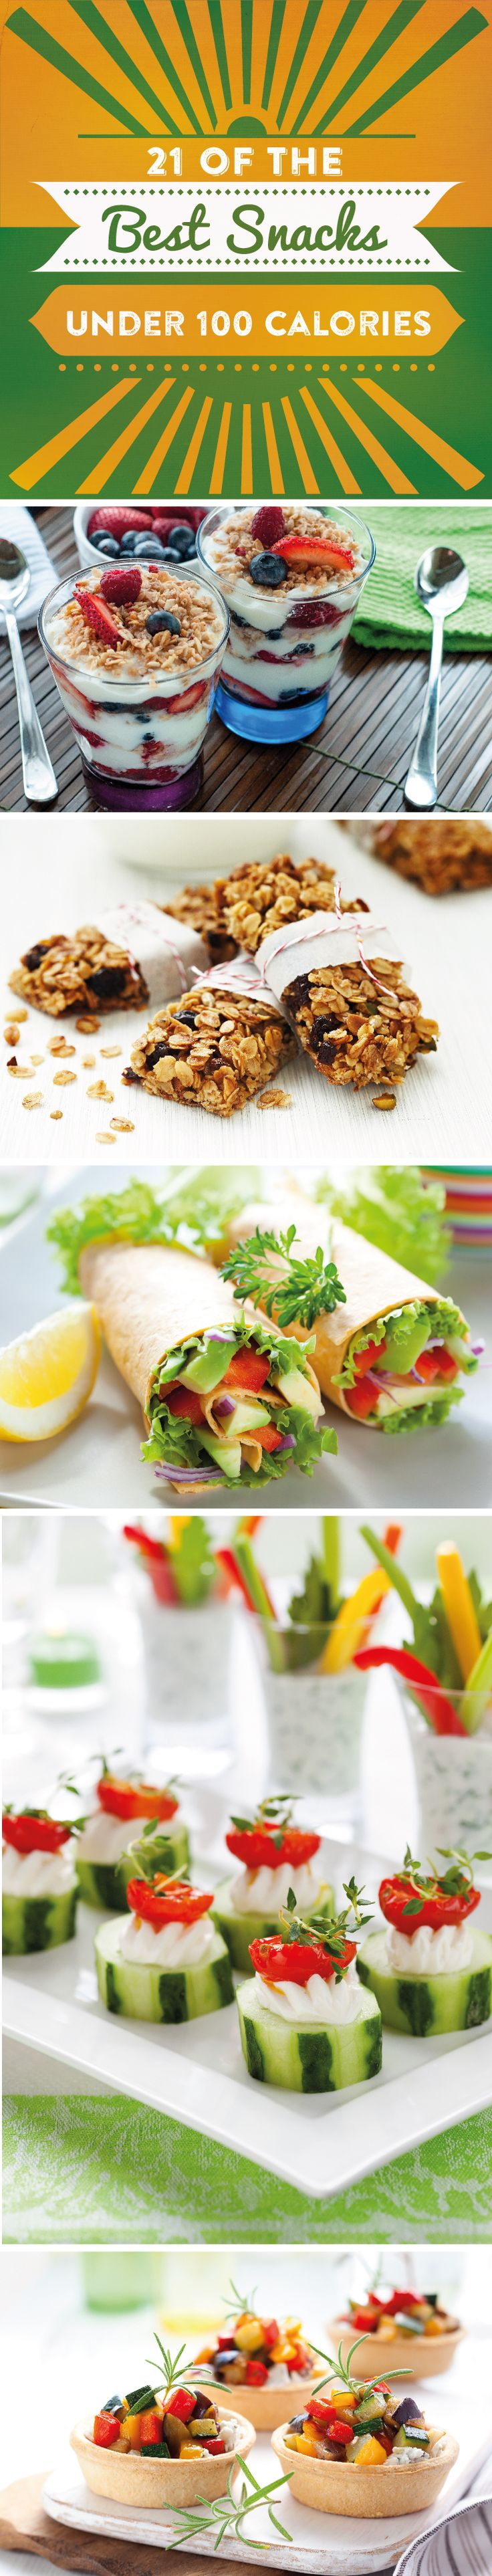 Sometimes you need a nosh without wrecking your diet. Check out these 21 of the best snacks under 100 calories, with recipes and serving suggestions!